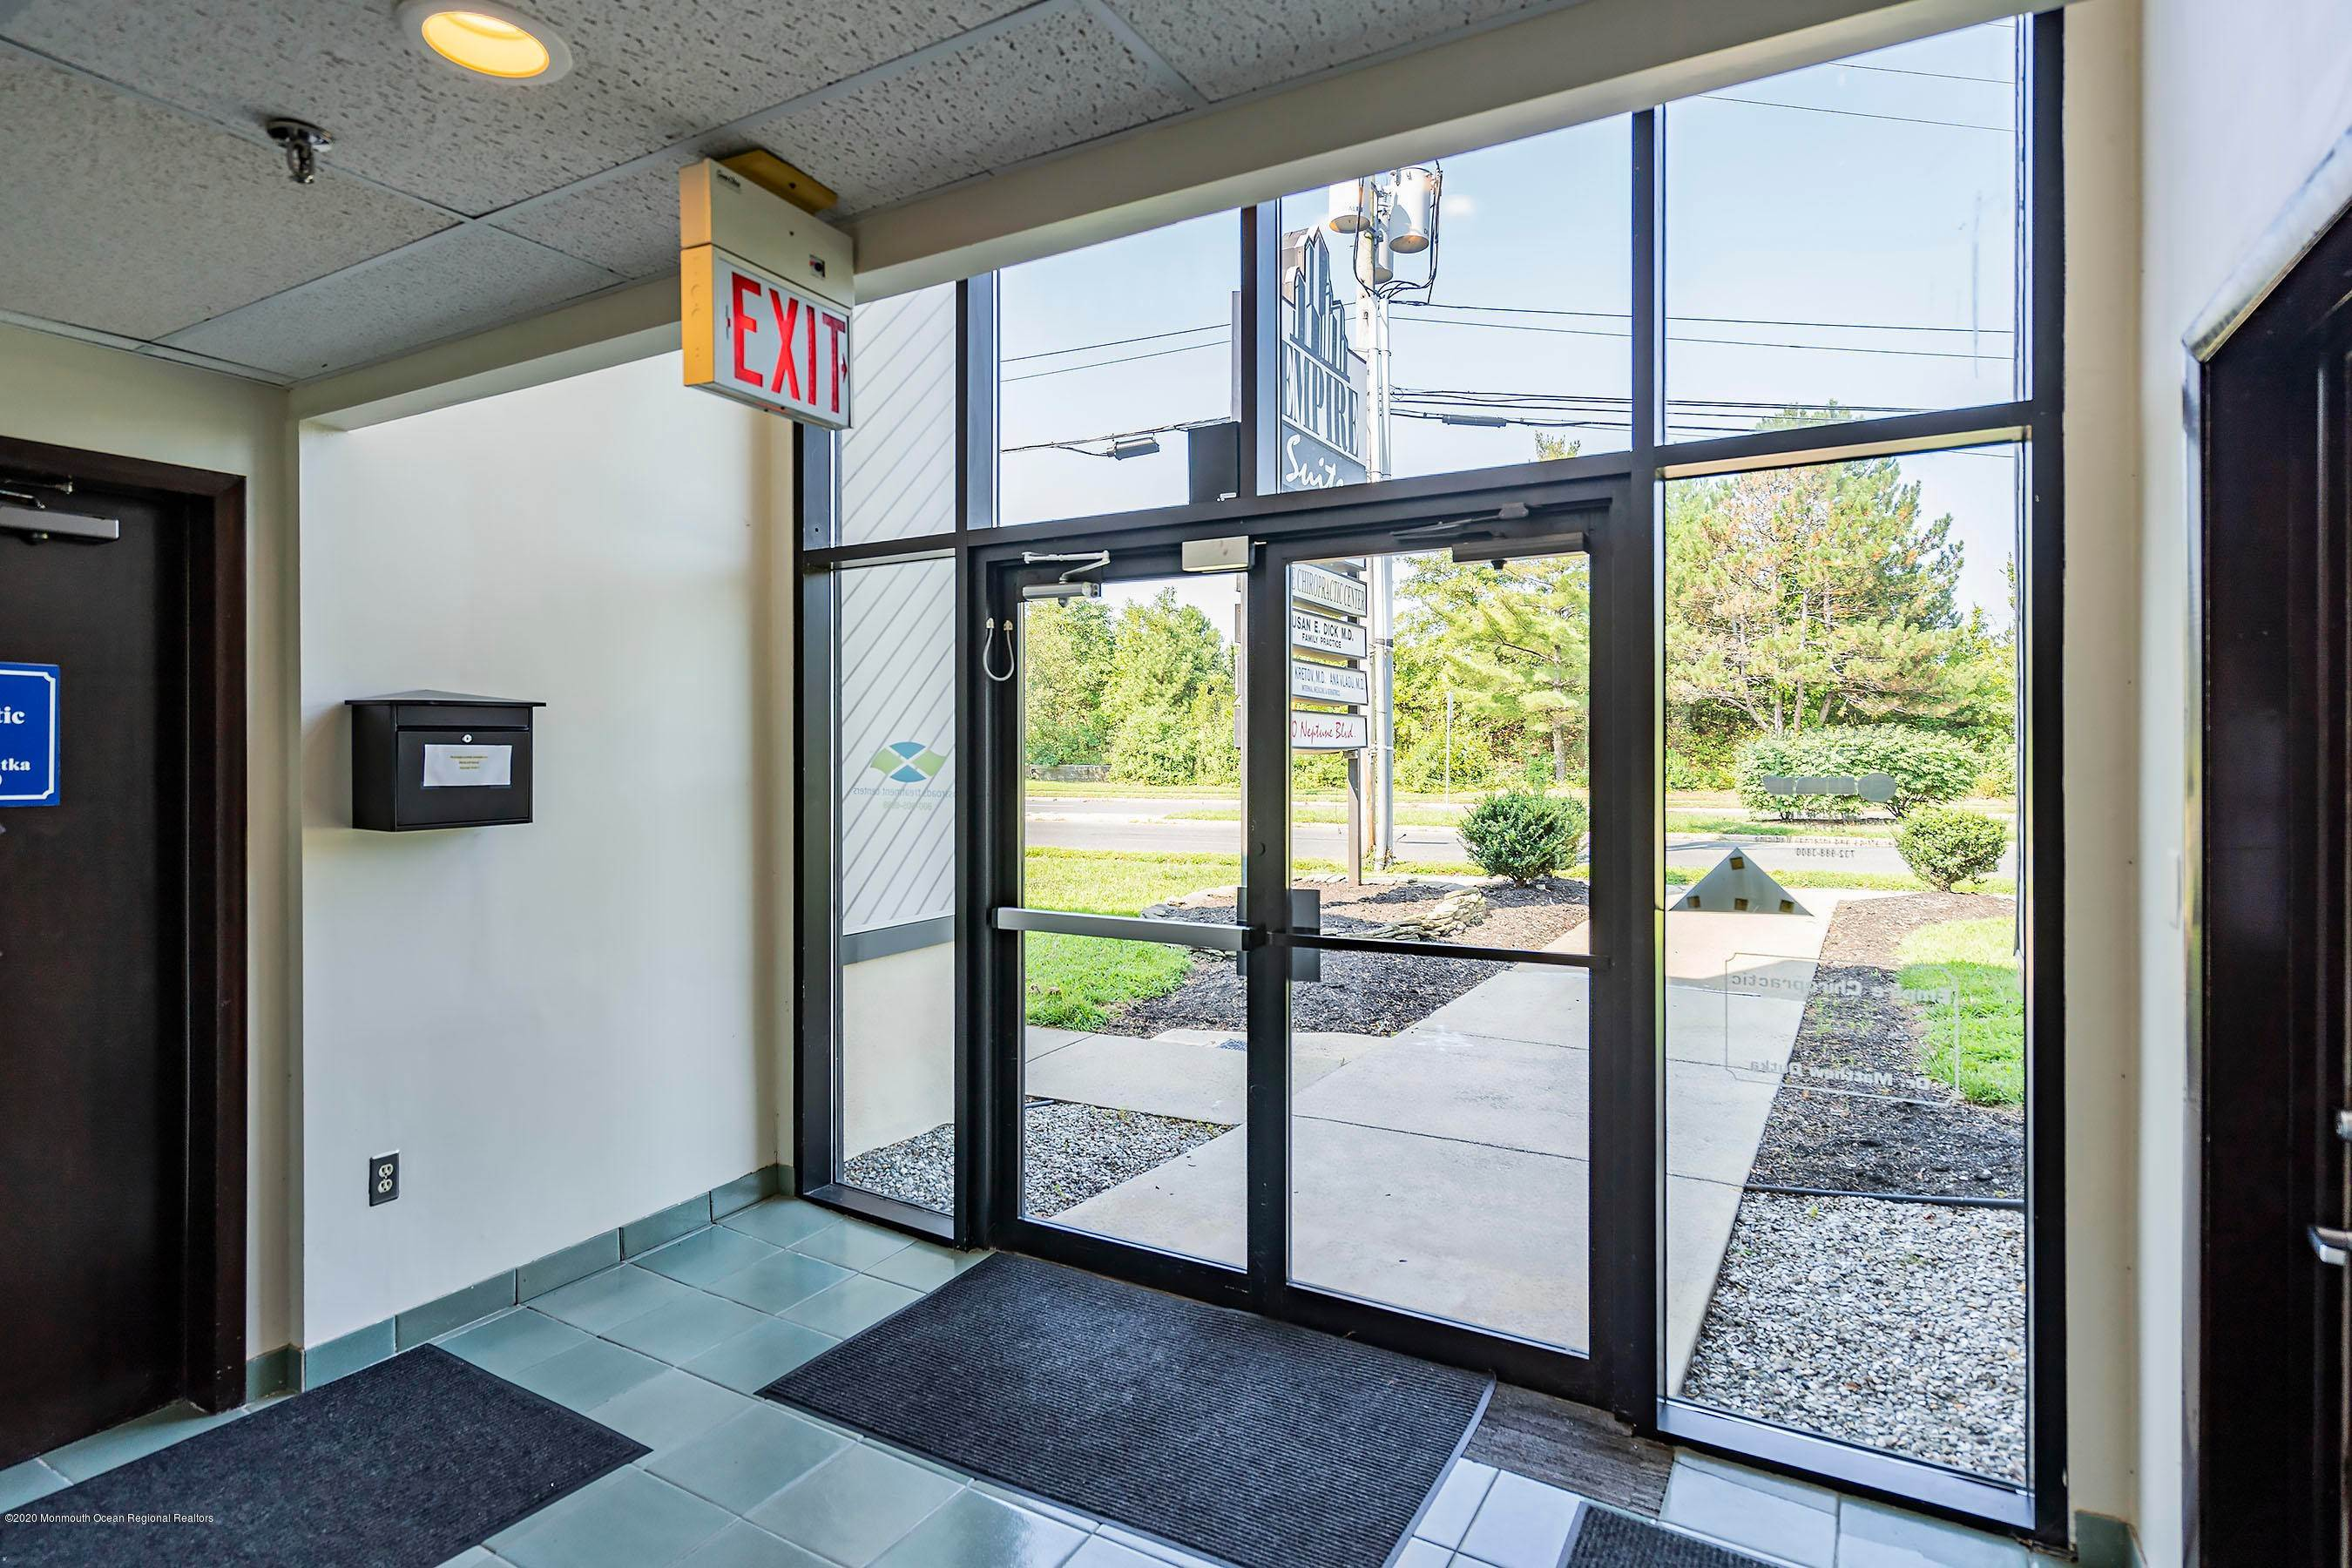 26. Commercial / Office for Sale at 230 Neptune Boulevard Neptune, New Jersey, 07753 United States